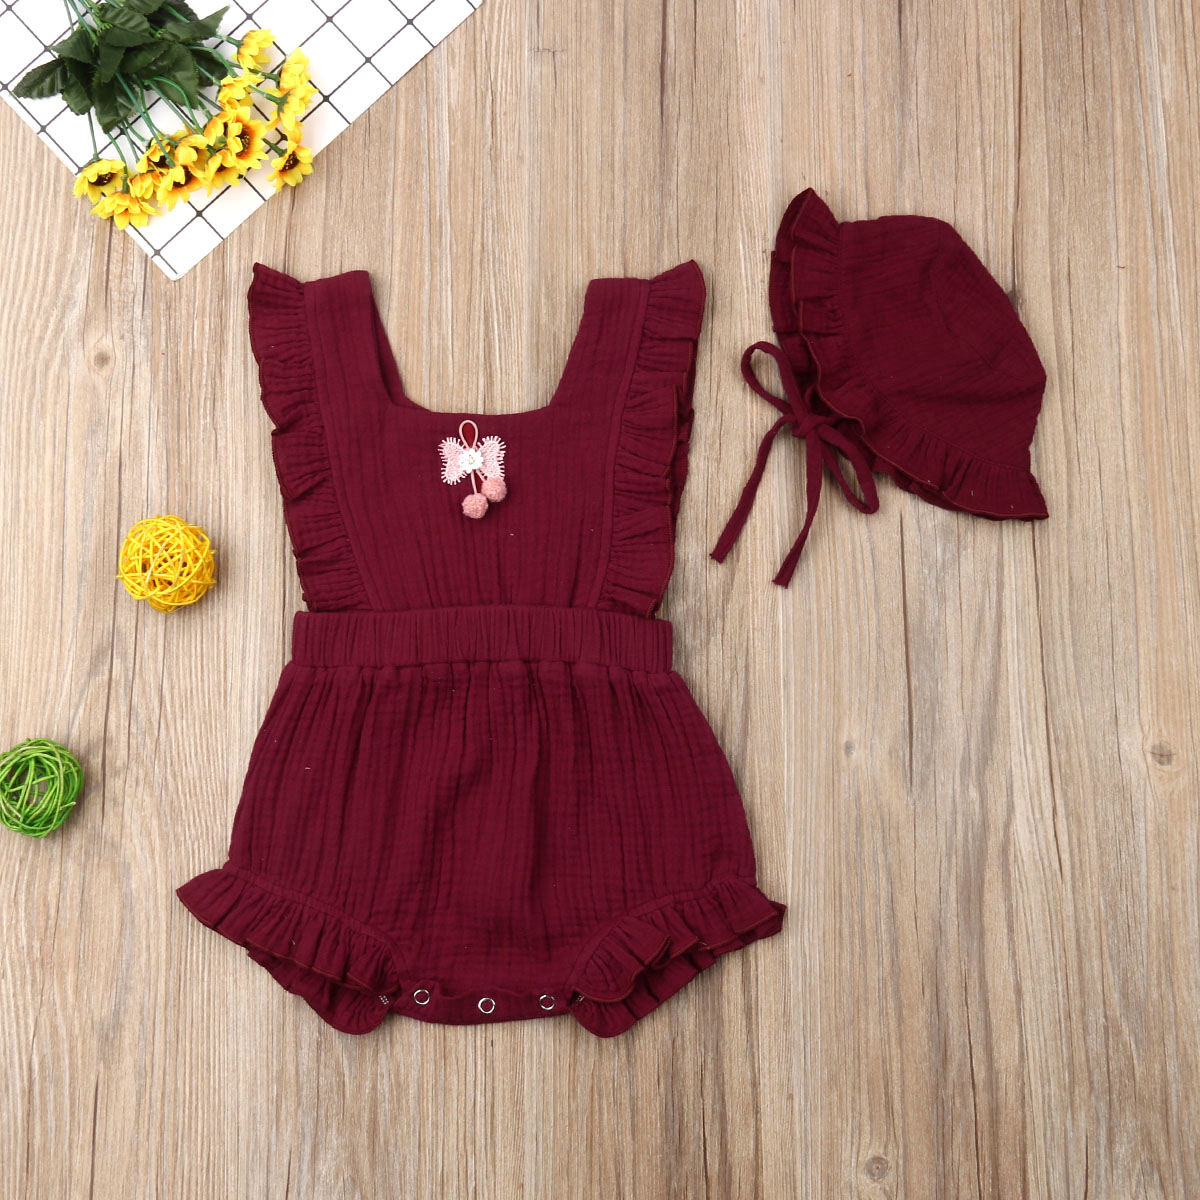 Pudcoco Newborn Baby Girl Clothes Solid Color Sleeveless Ruffle Romper Jumpsuit Hat 2Pcs Outfits Cotton Clothes